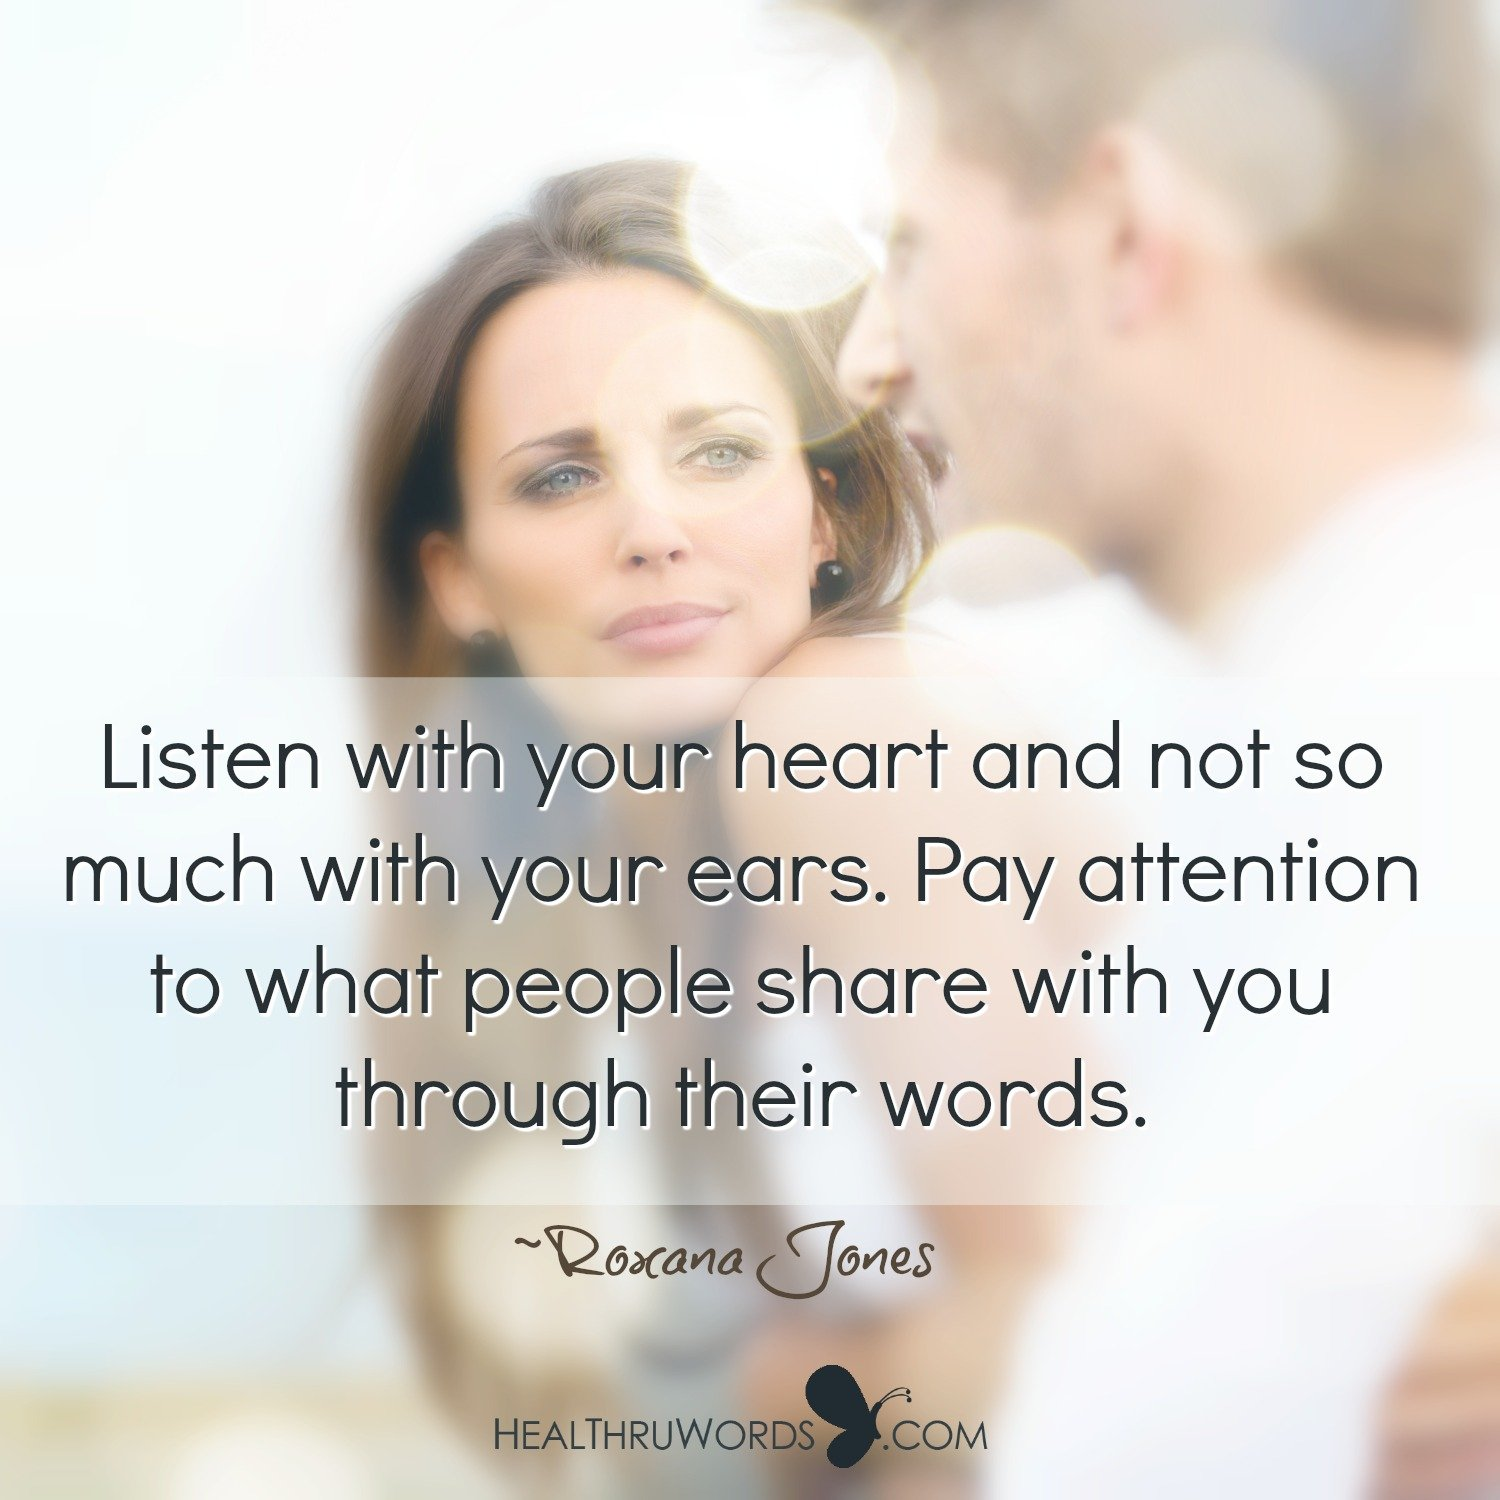 Inspirational Image: The Art of Listening